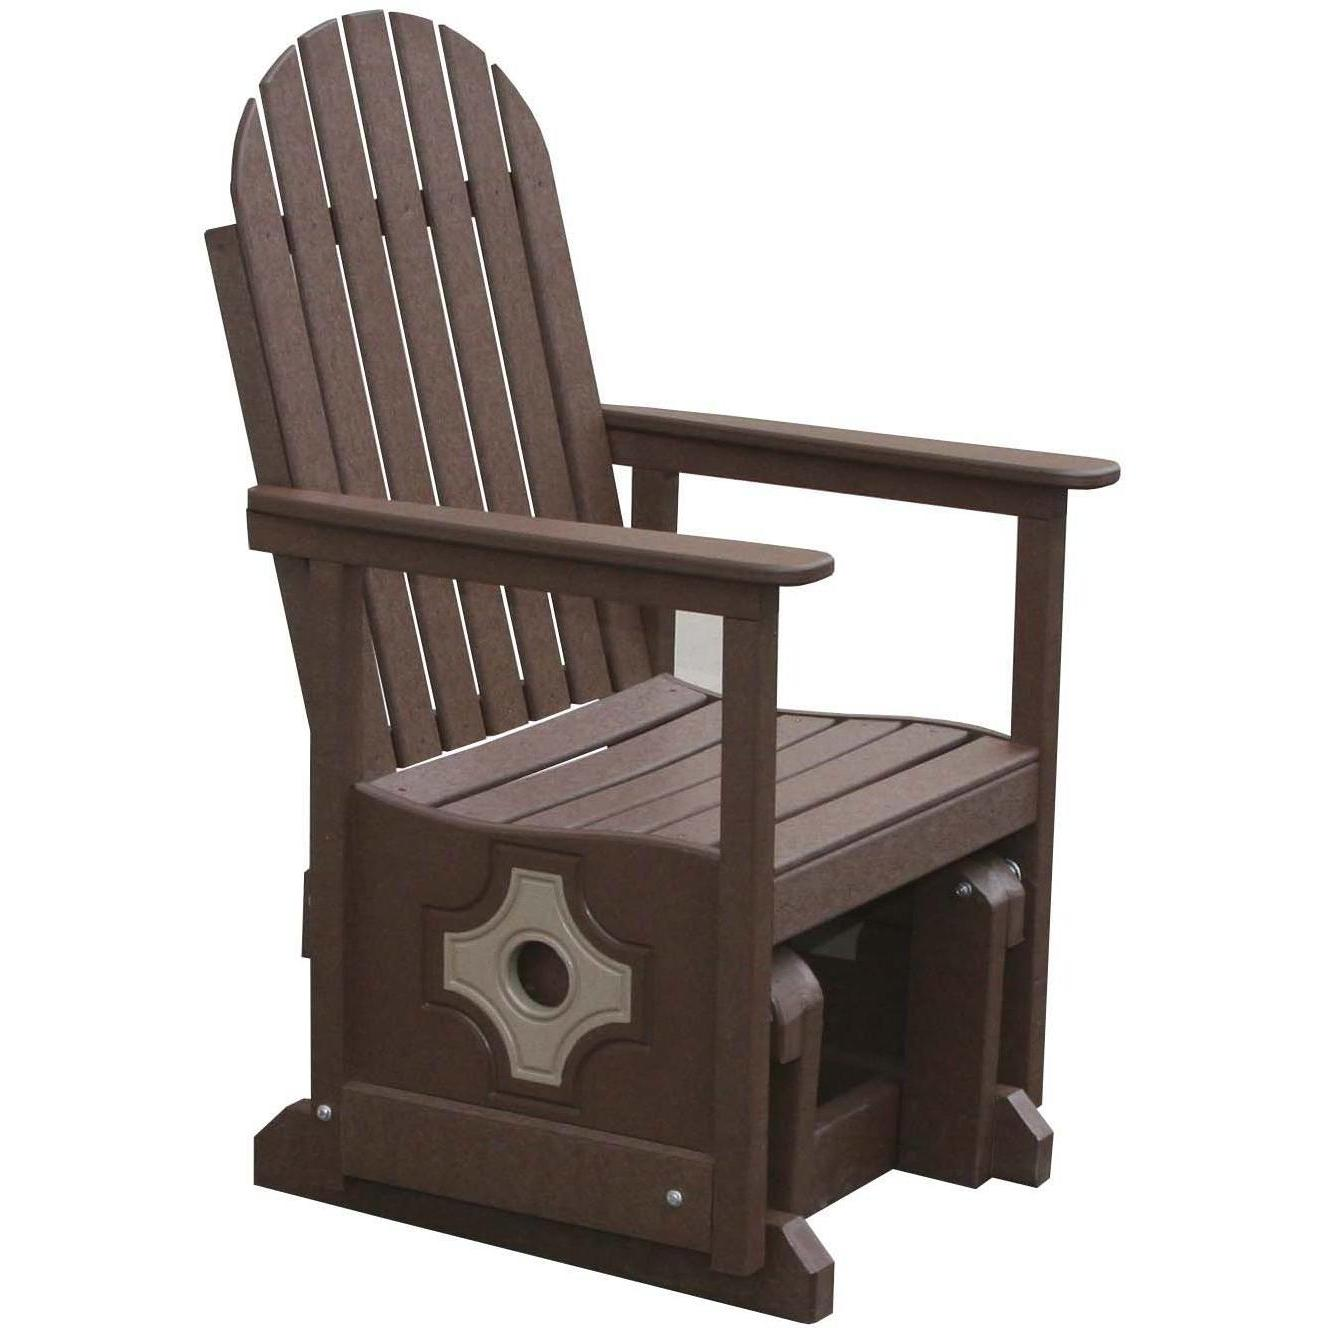 Image of: Brown Patio Glider Chair